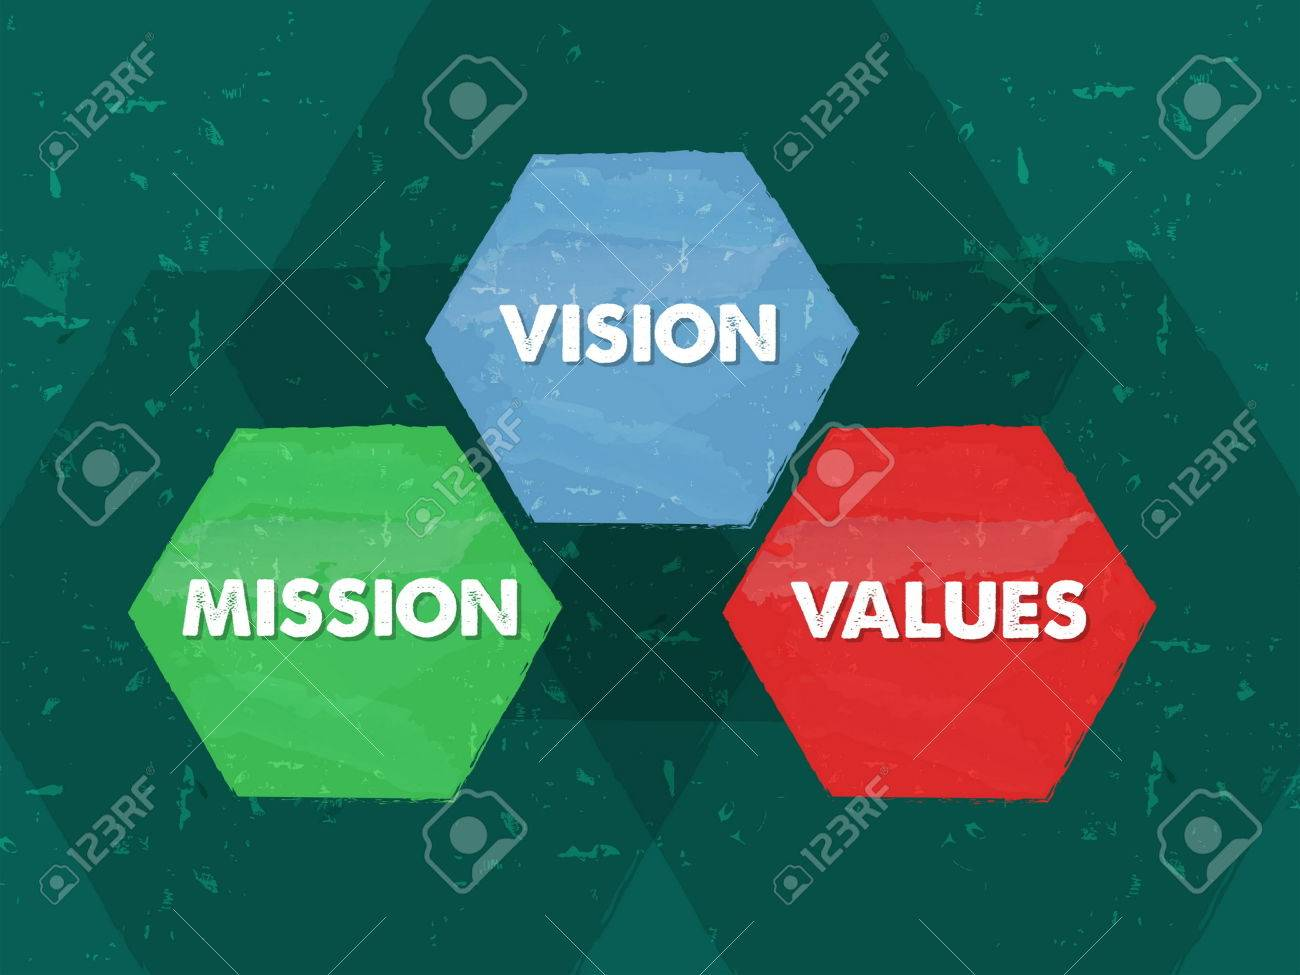 mission, values, vision - white text in colorful grunge flat design hexagons, business cultural riches concept words, vector - 58525592